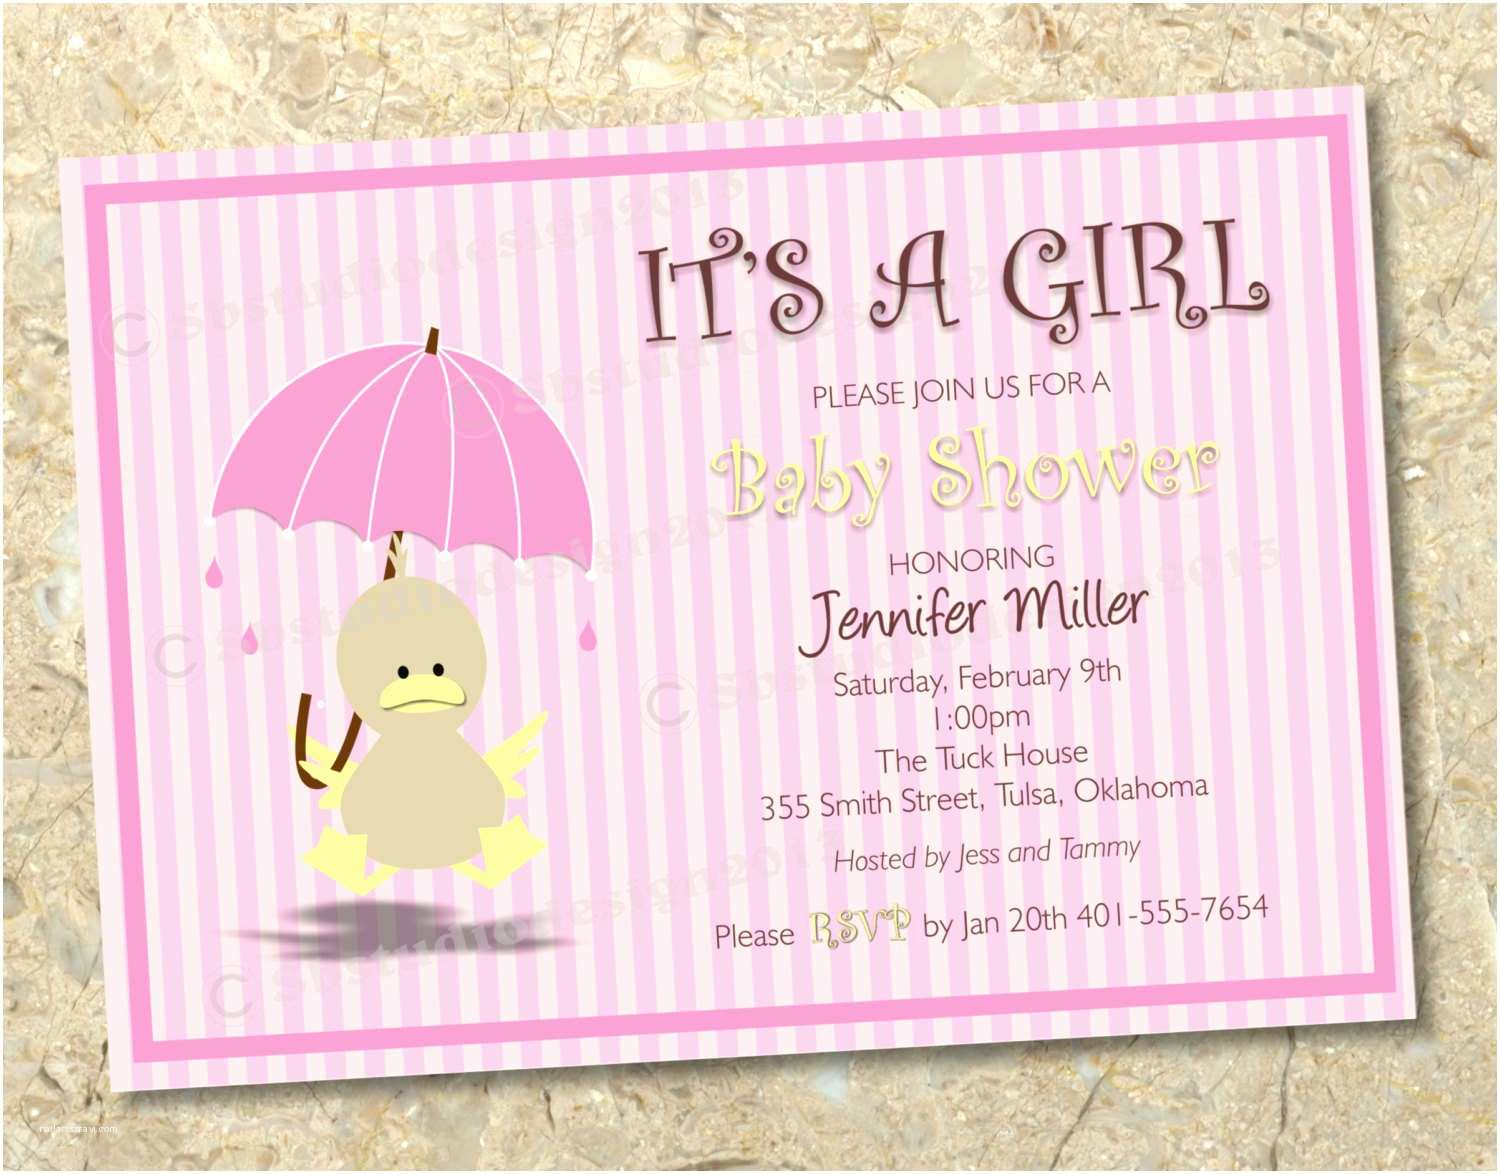 Free Baby Shower Invitations Free Printable Template for Baby Shower Invitations